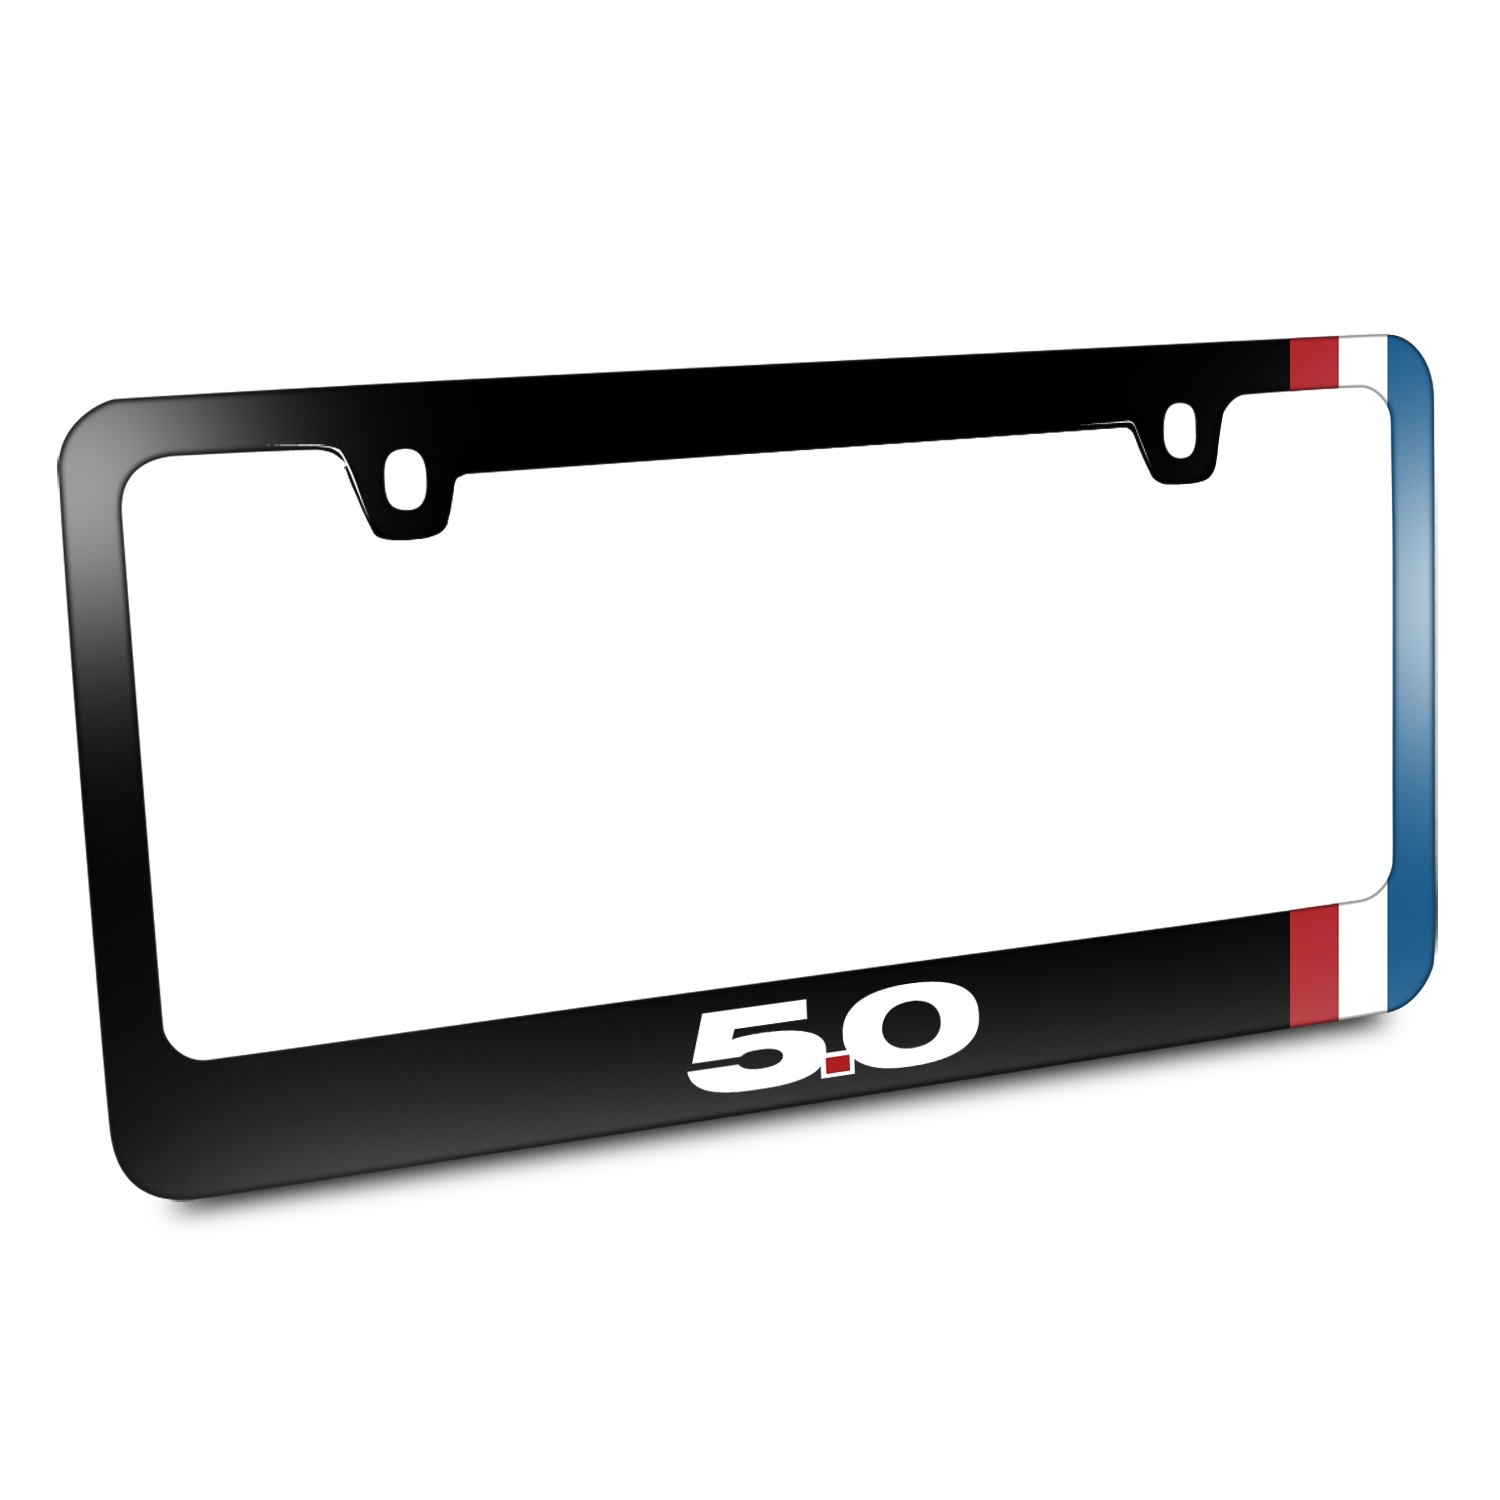 Ford Mustang GT 5.0 Side Red White Blue Stripe Black Metal License Plate Frame